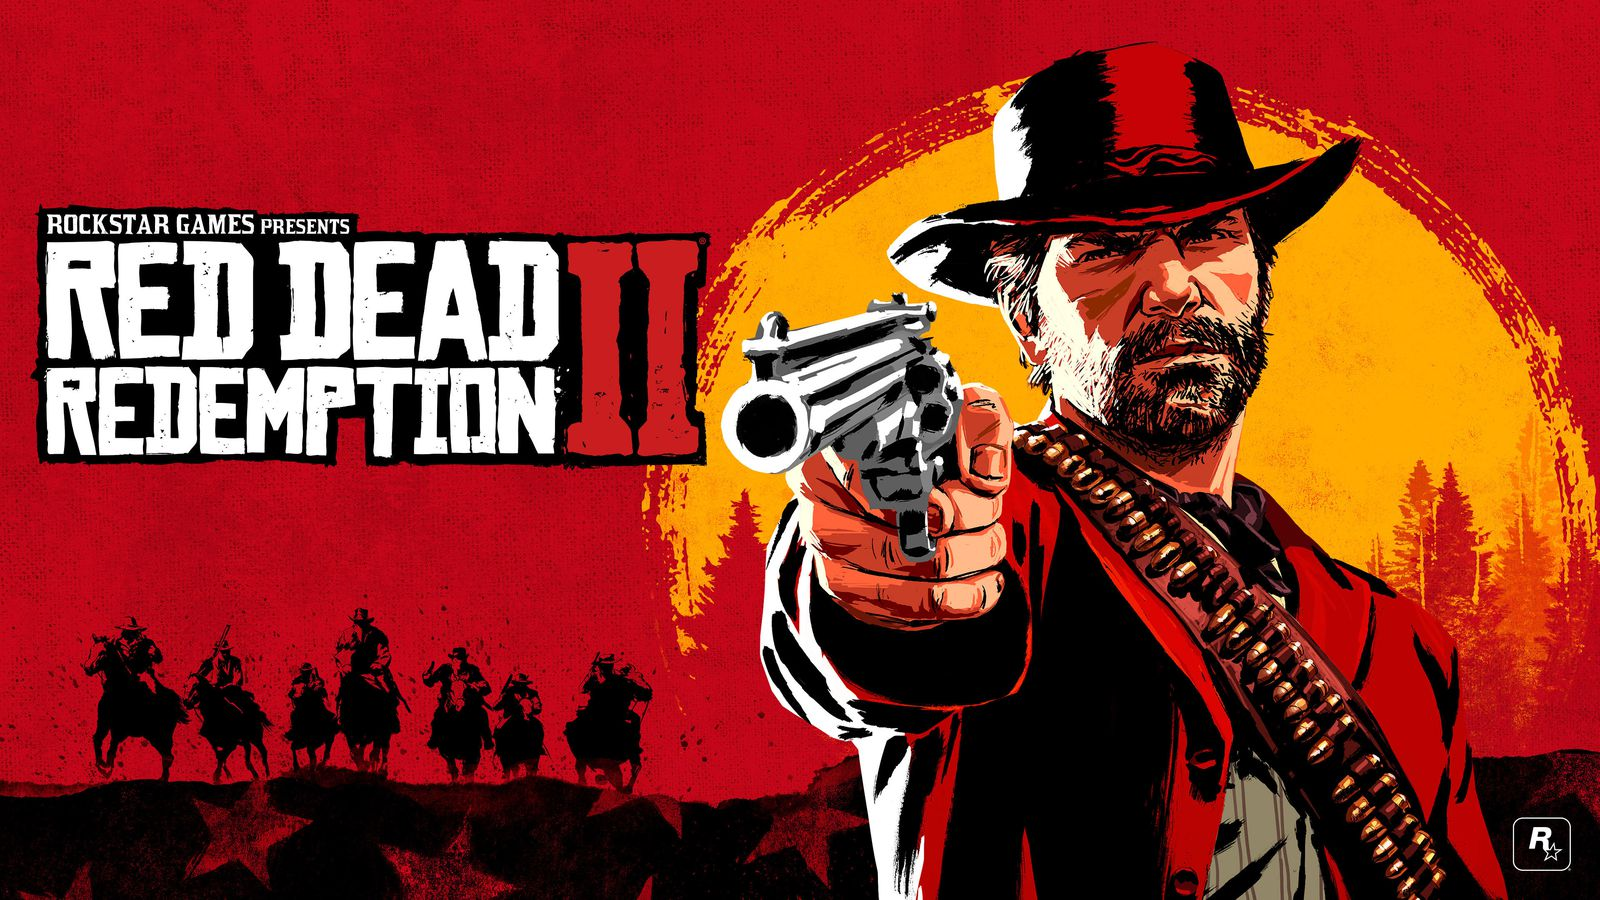 Red Dead Redemption 2 Prices The Best Rdr2 Deals On Pc Ps4